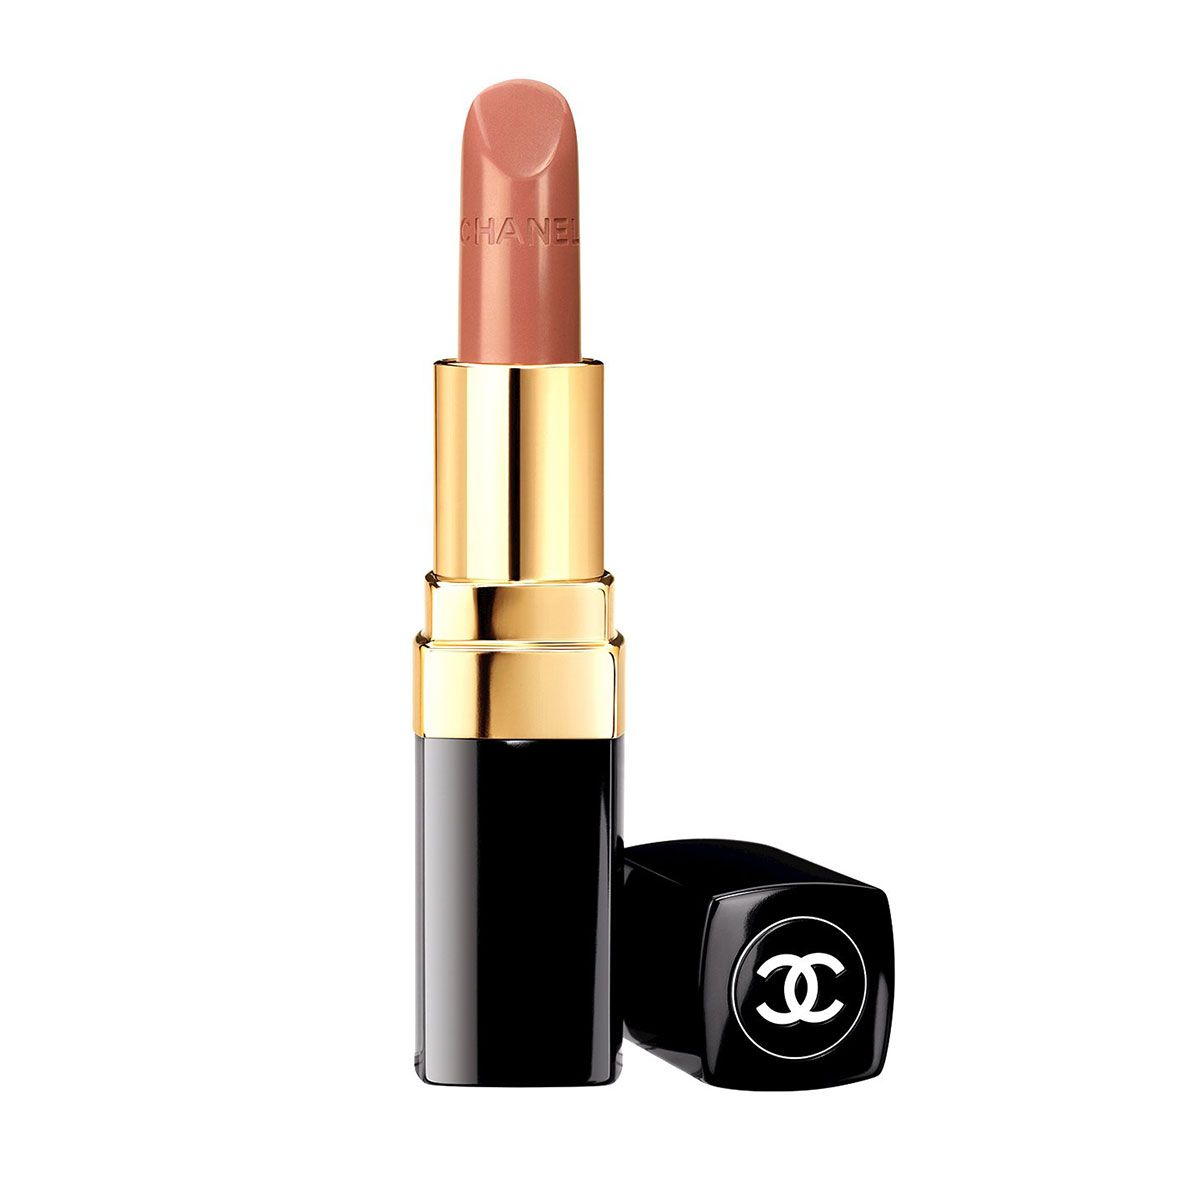 Chanel Rouge Coco in Adrienne